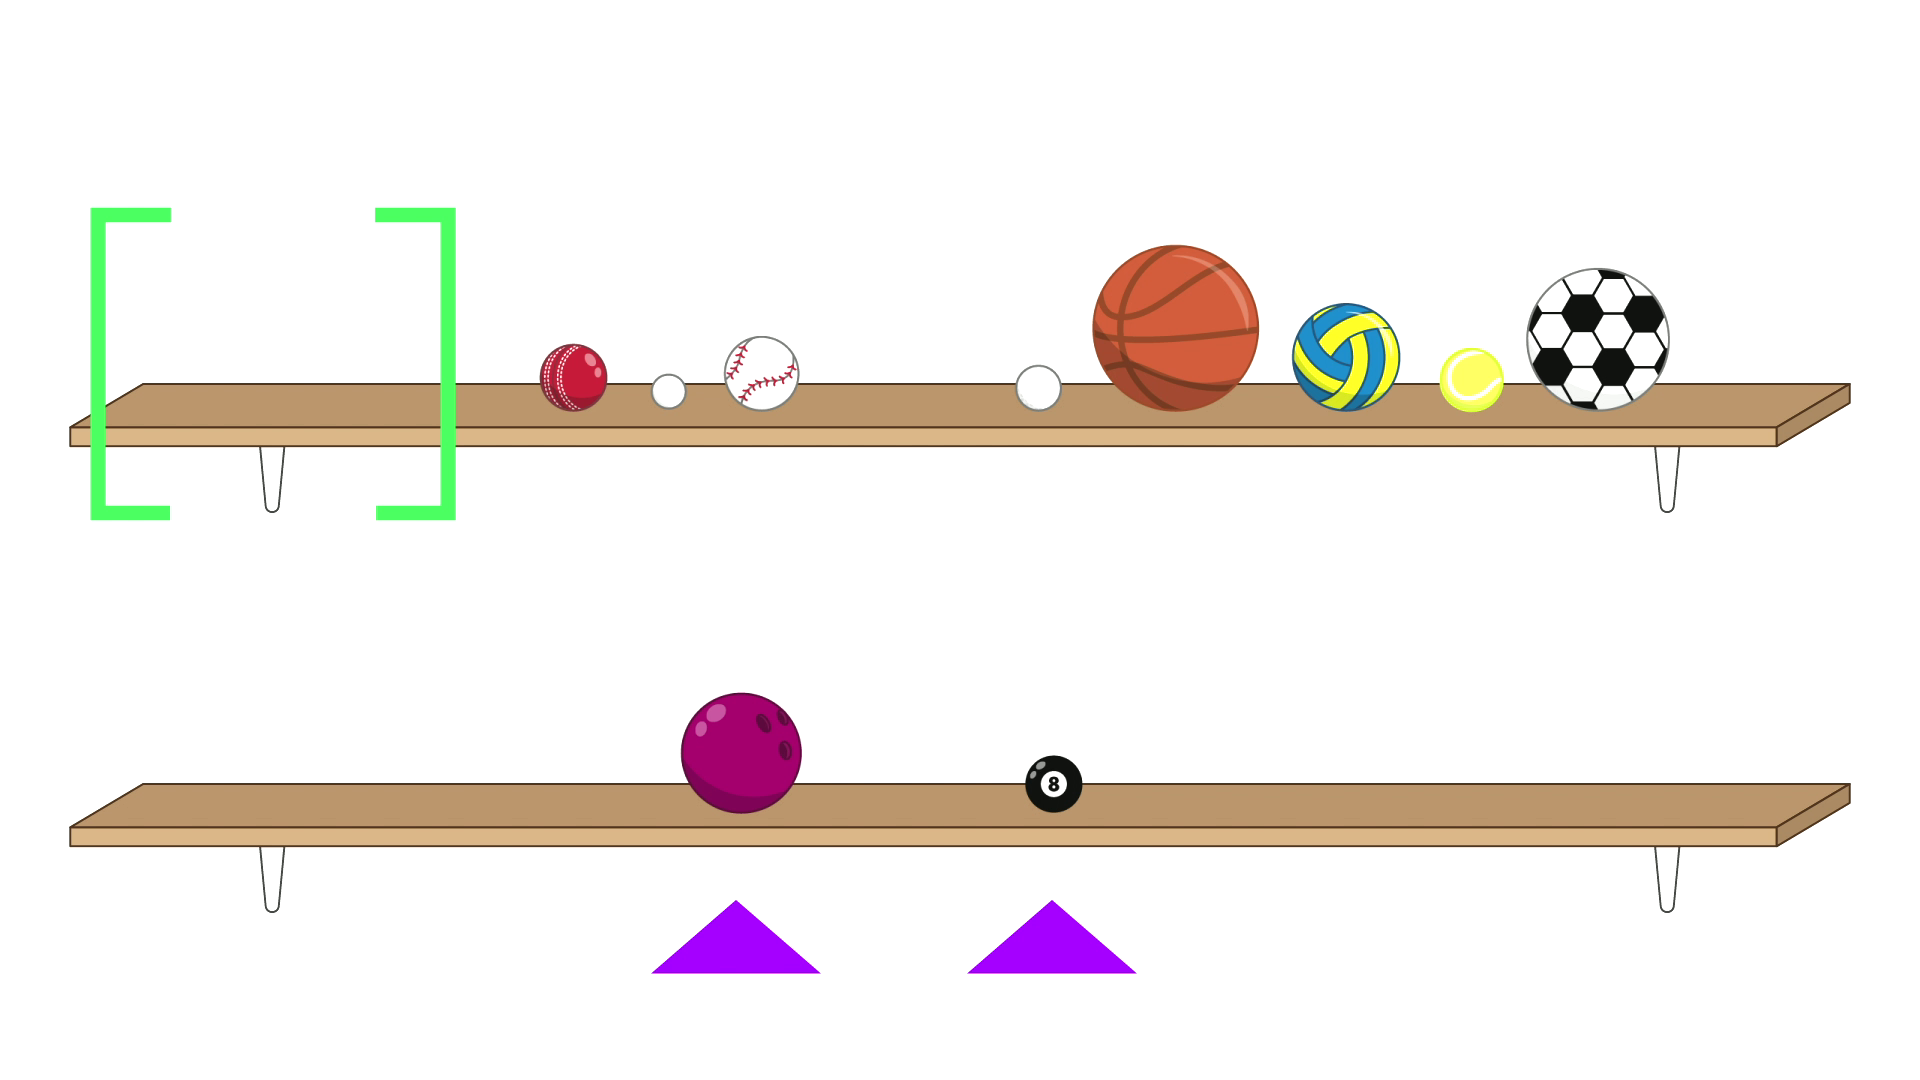 The top shelf now contains an empty pair of green brackets, followed by a set of three balls (cricket ball, ping-pong ball, baseball) and a set of five balls (golf ball, basketball, netball, tennis ball, soccer ball). The bowling ball and pool ball sit separately on the lower shelf, with a purple arrow pointing at each of them.